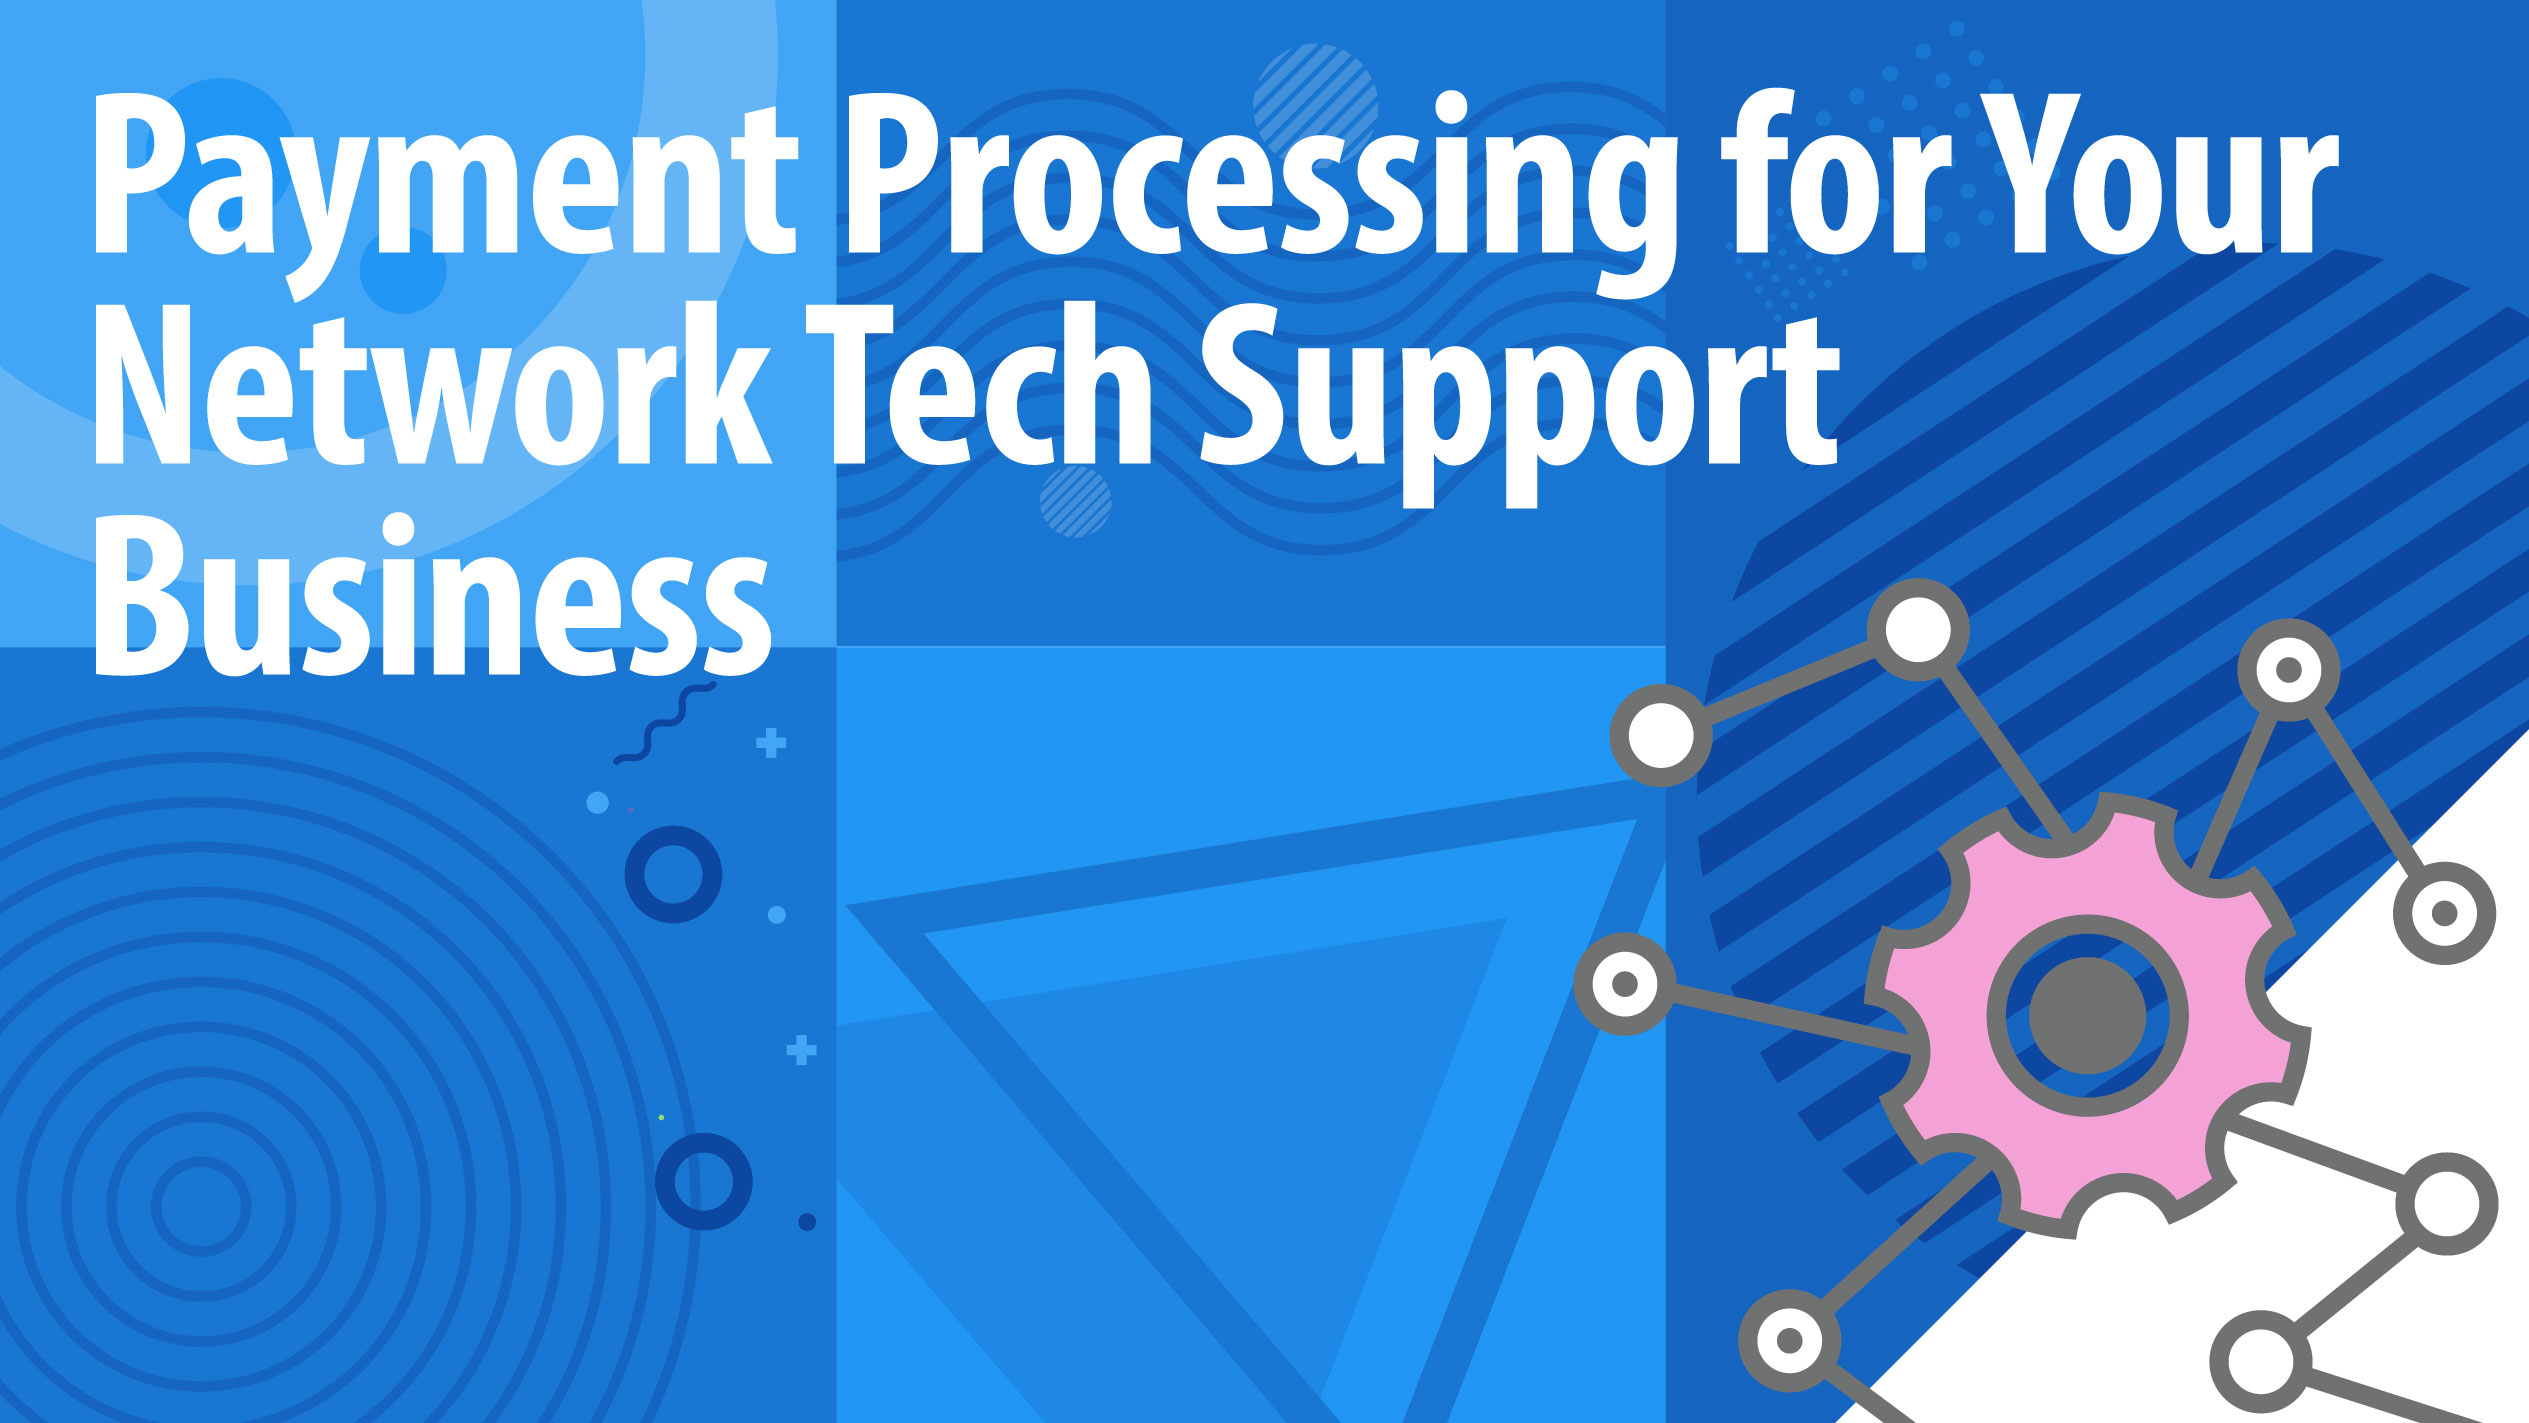 Payment Processing for Your Network Tech Support Business